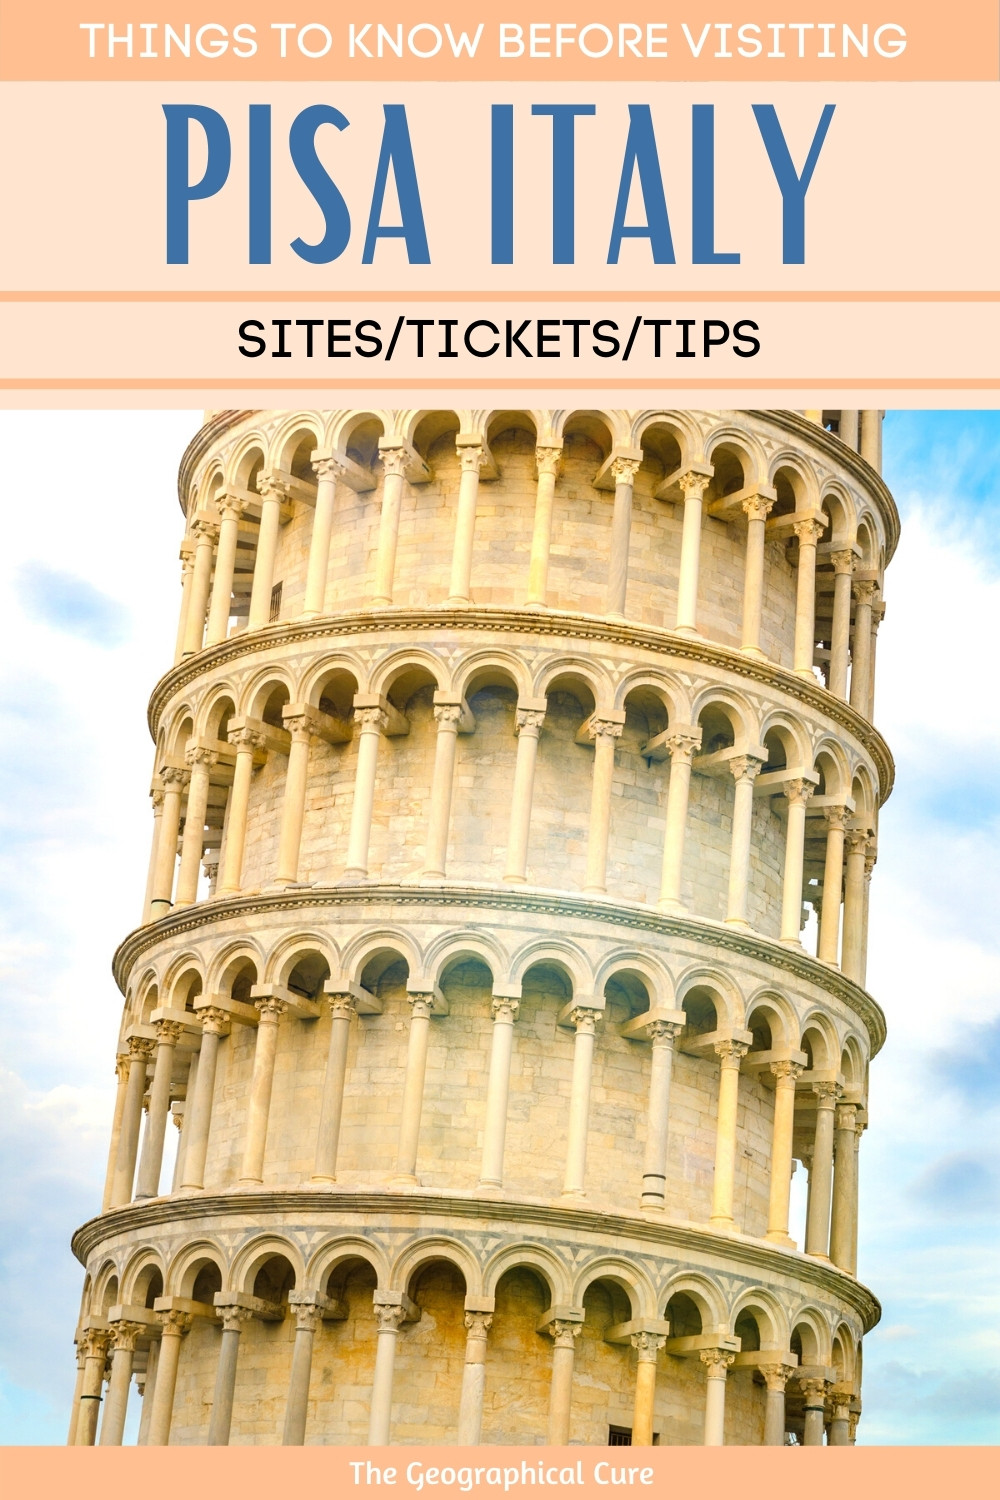 Must Know Tips for Visiting Pisa Italy